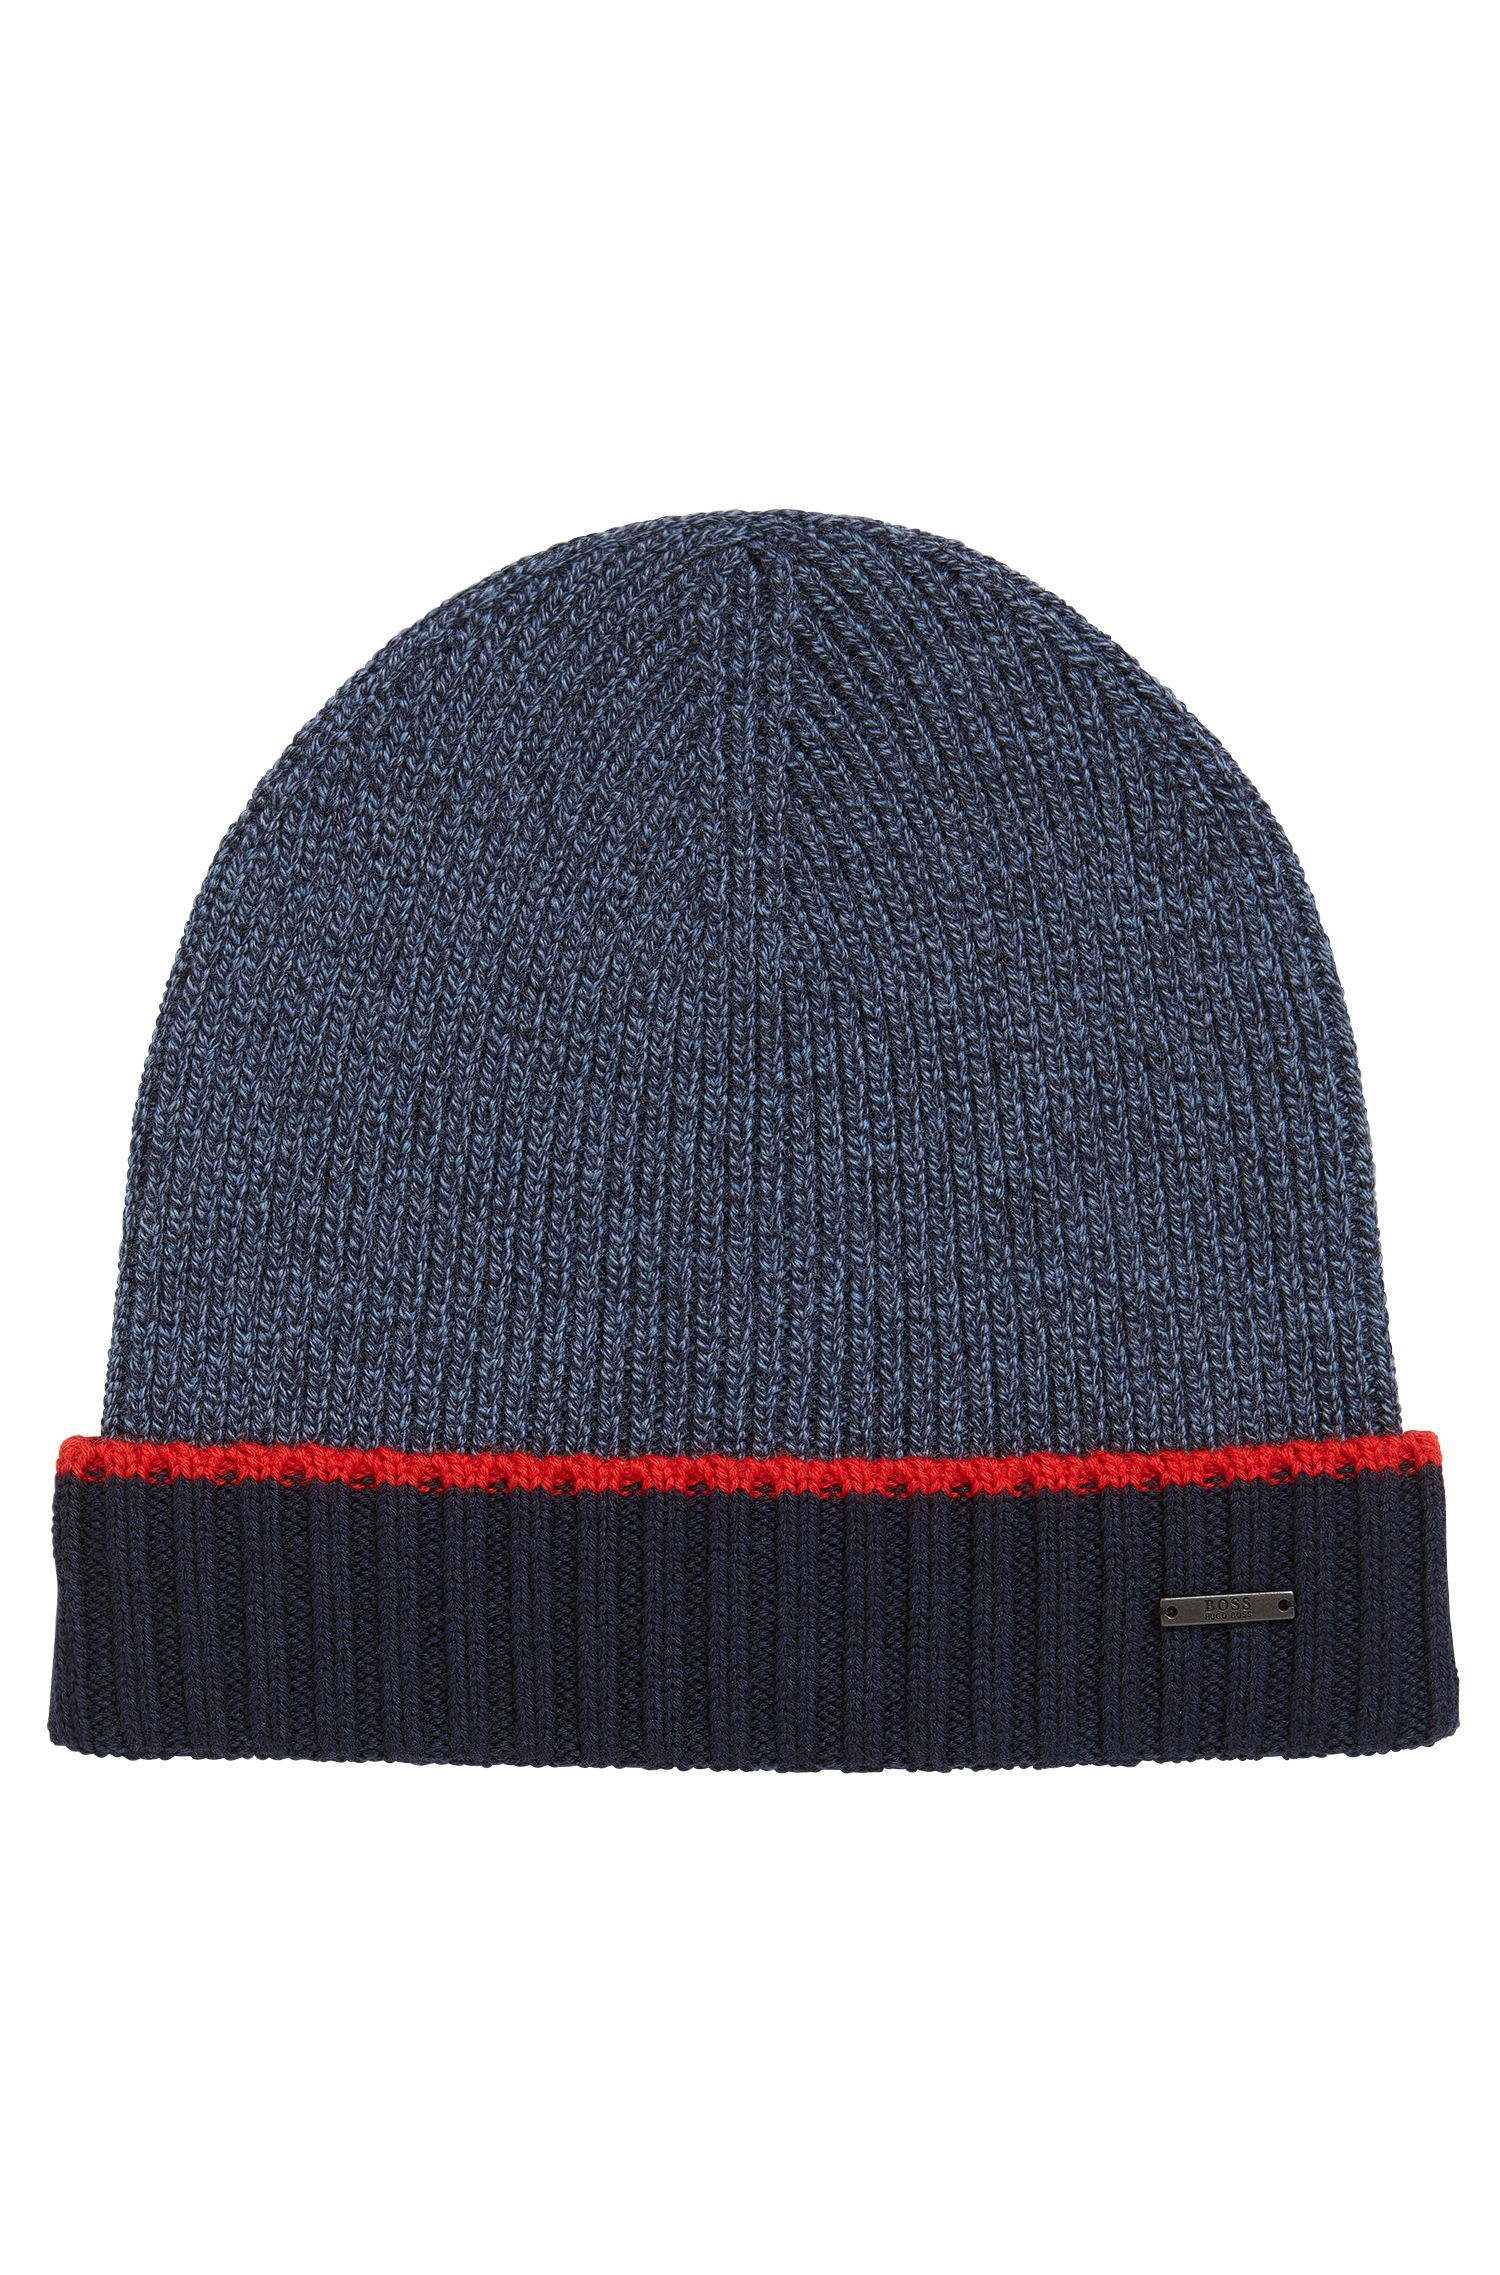 Virgin Wool Beanie | Frisk